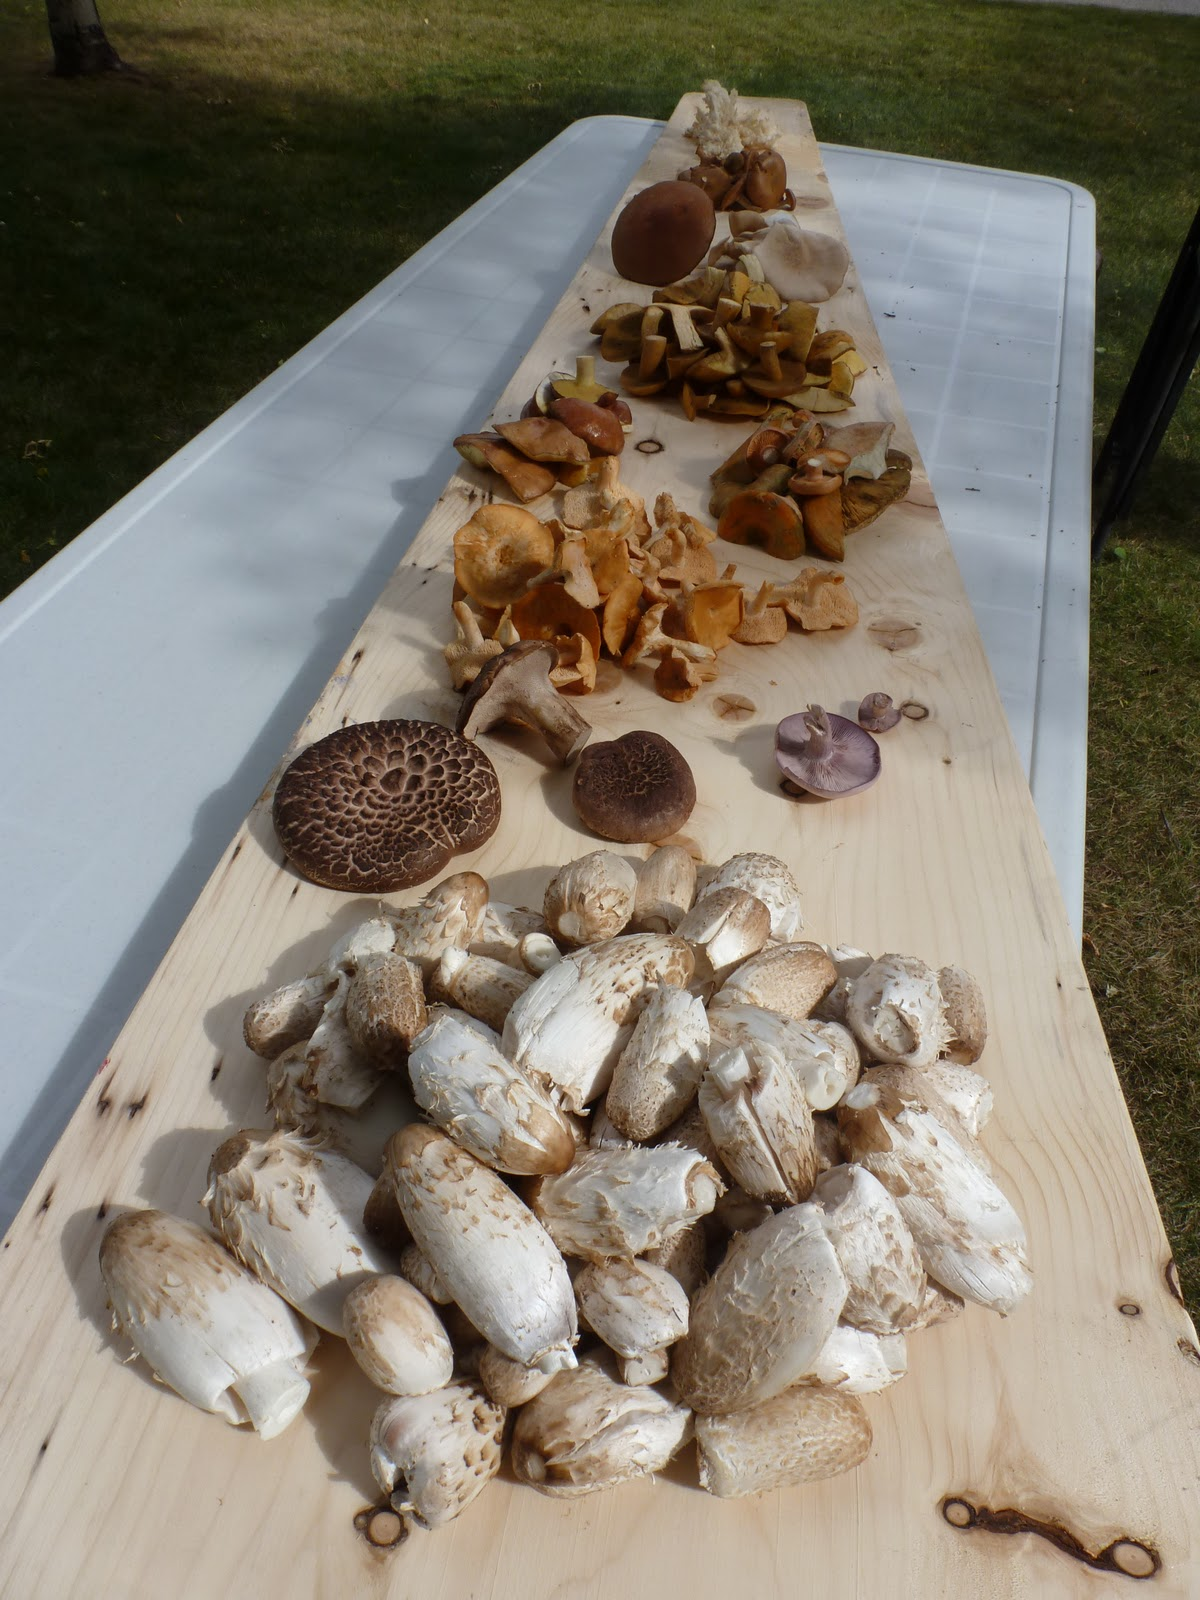 Some edible wild mushrooms from Alberta